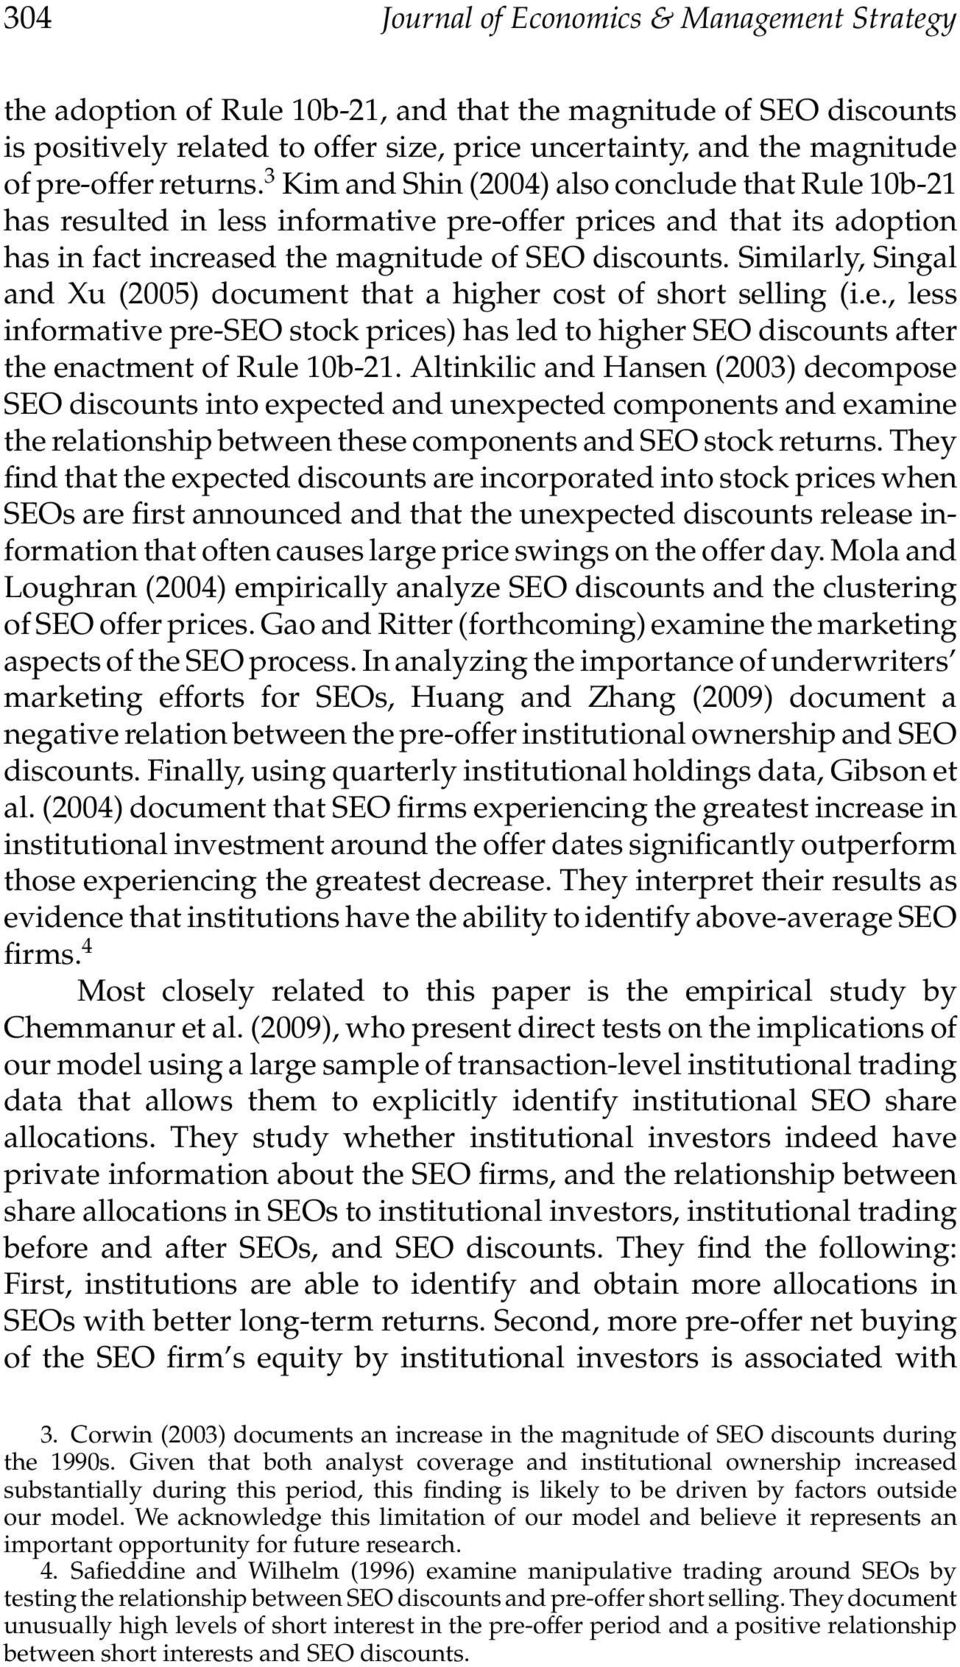 Similarly, Singal and Xu (2005) document that a higher cost of short selling (i.e., less informative pre-seo stock prices) has led to higher SEO discounts after the enactment of Rule 10b-21.